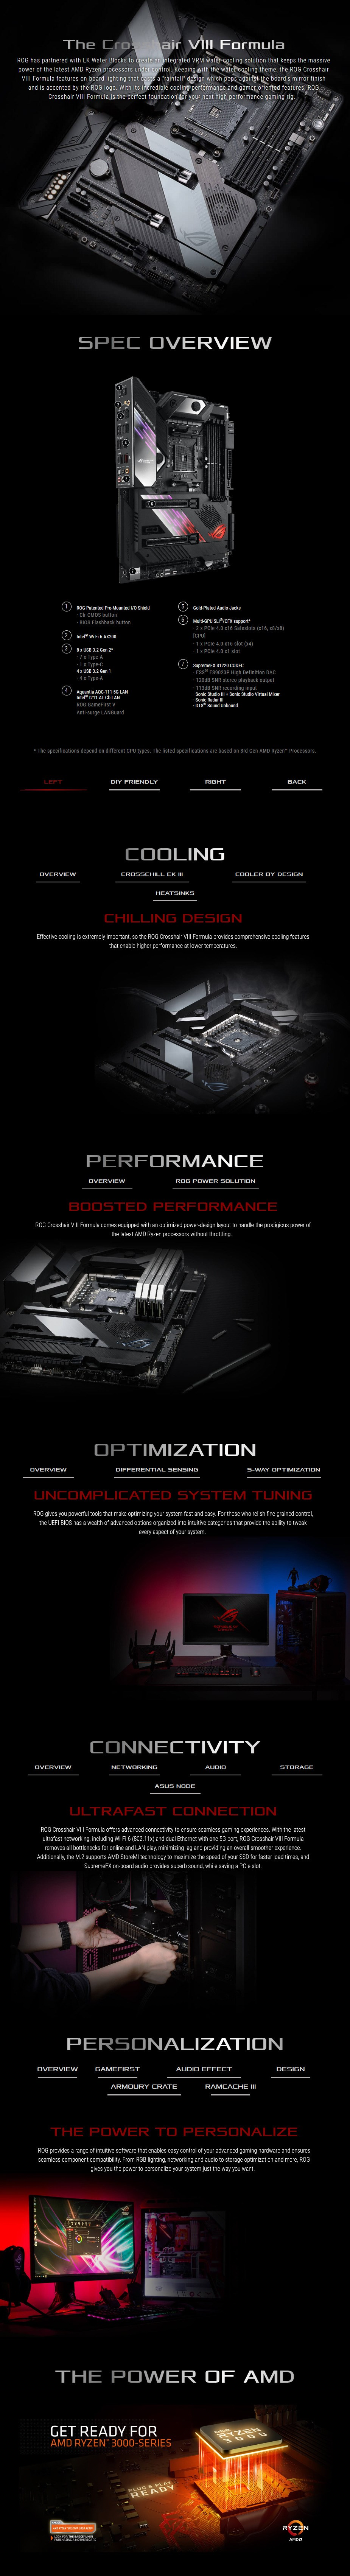 ASUS ROG Crosshair VIII Formula X570 AM4 ATX Motherboard - Overview 1